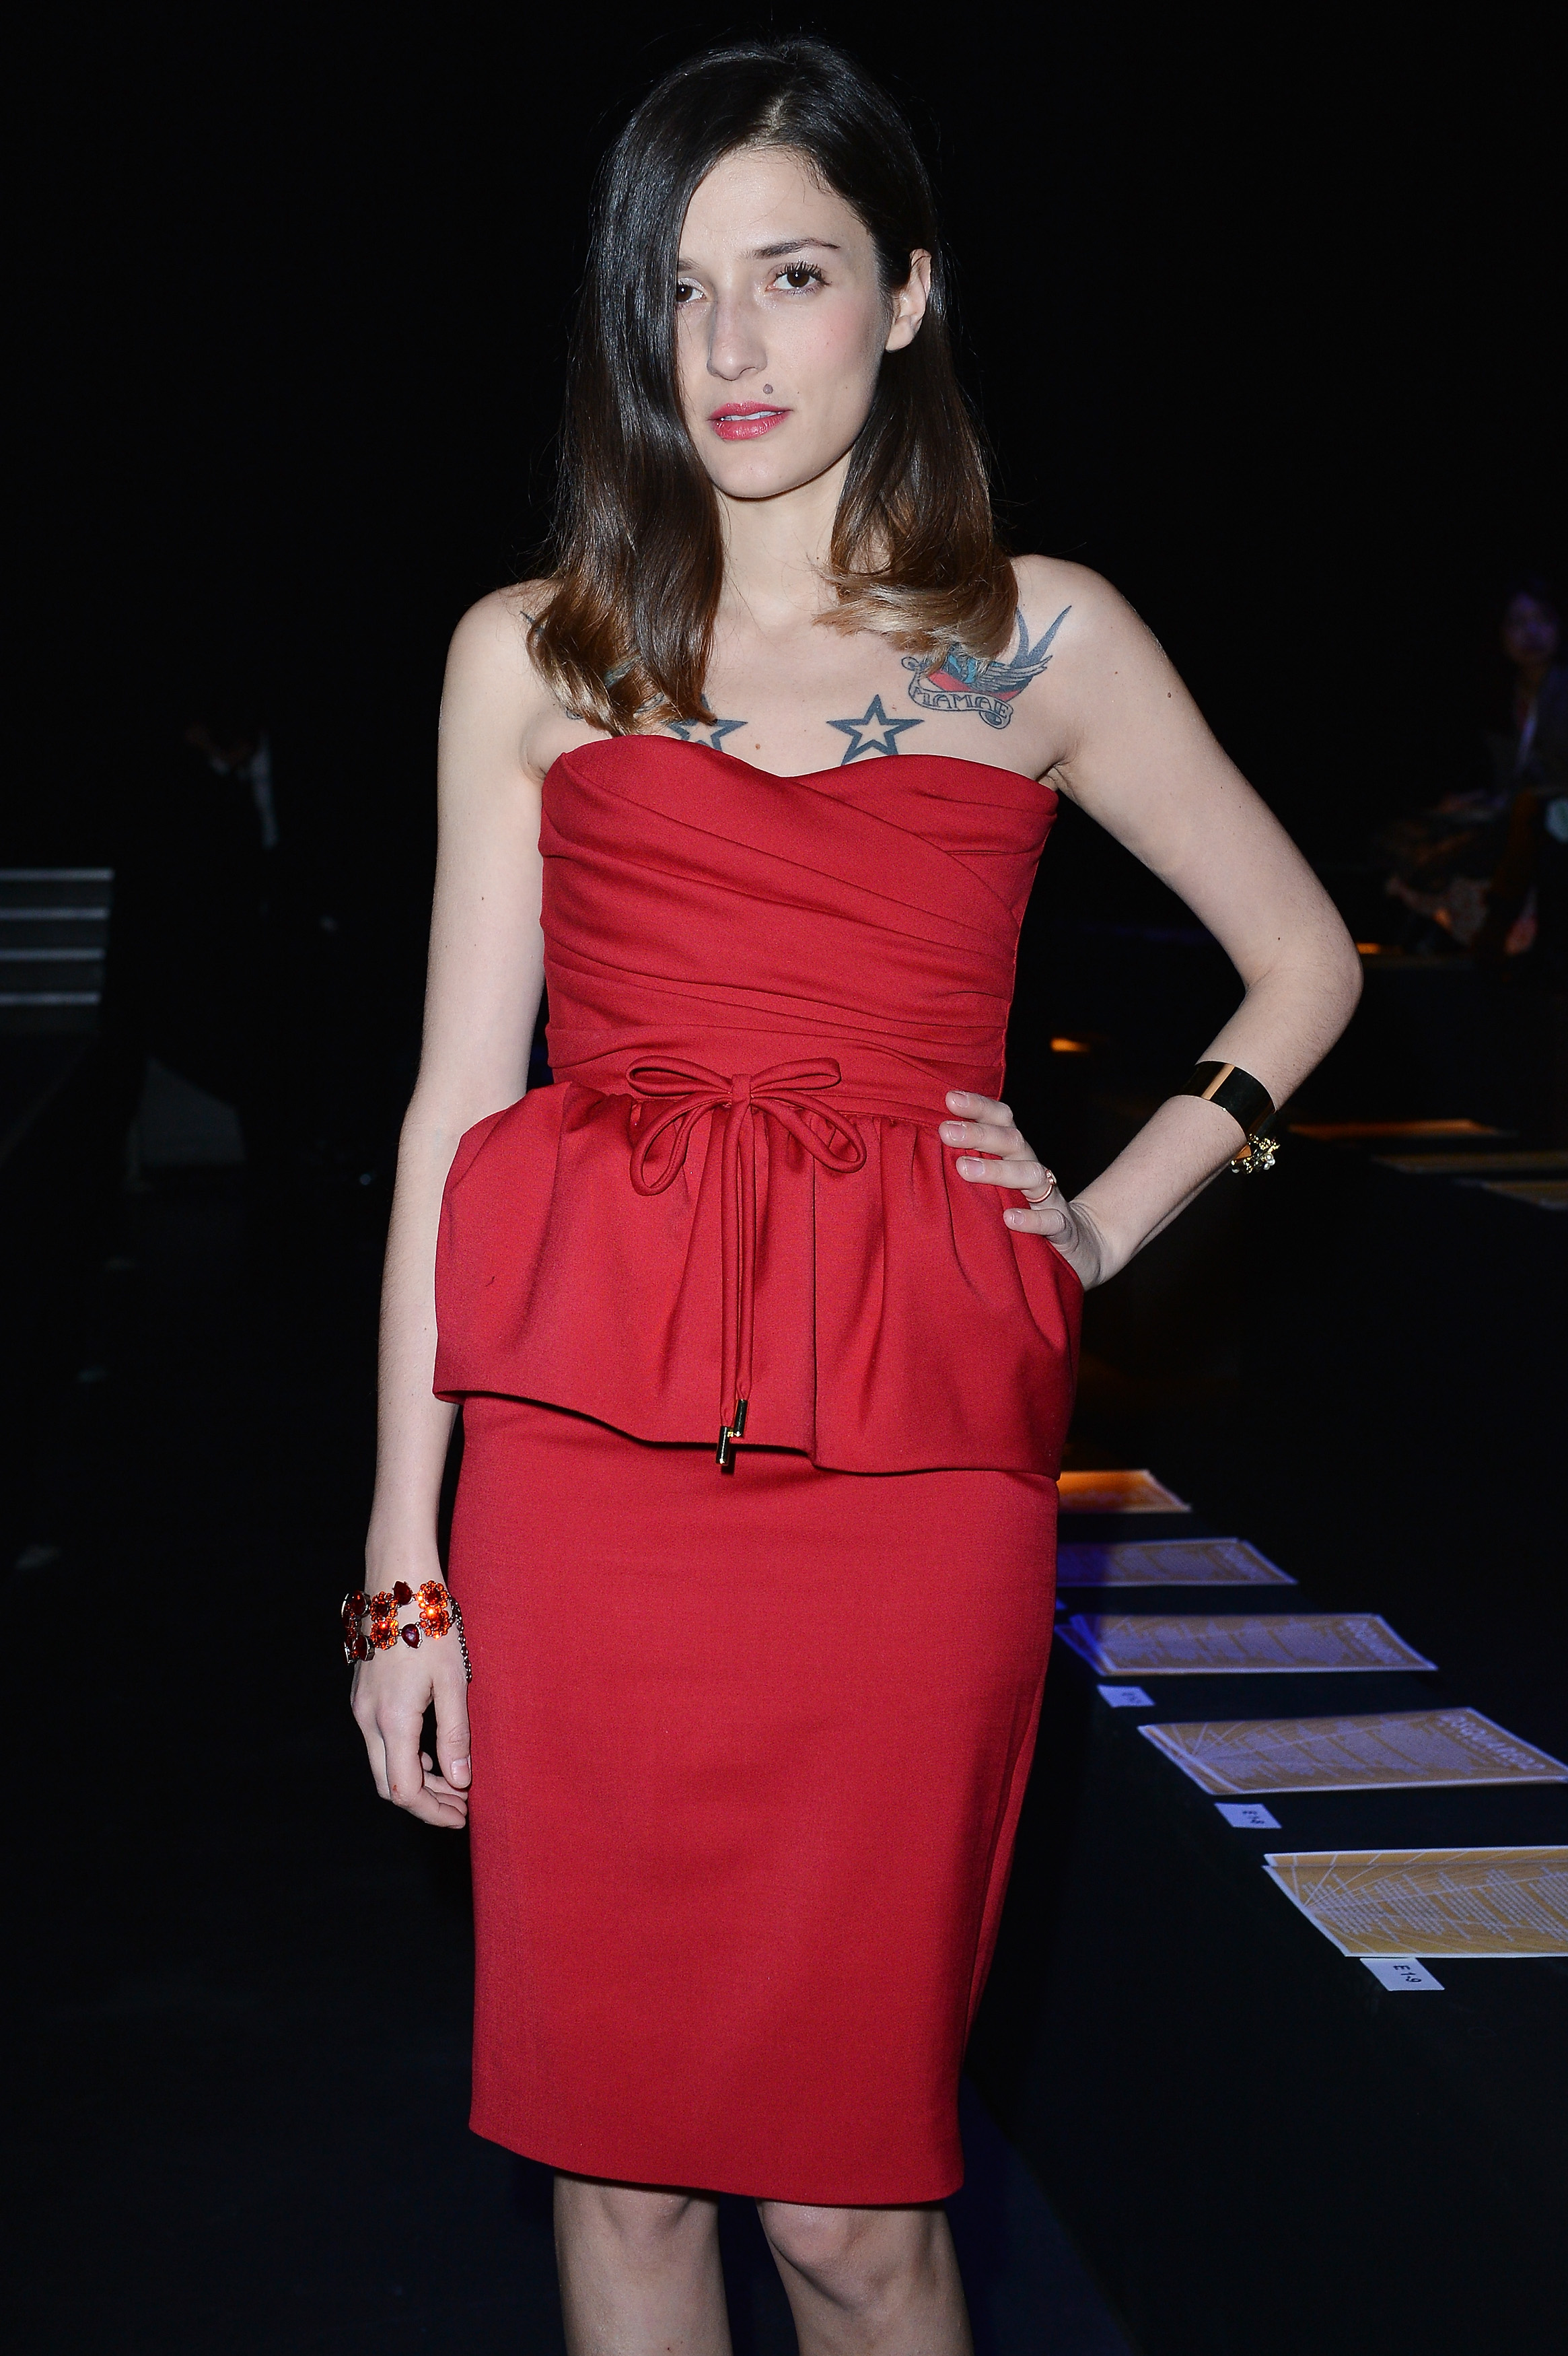 Eleonora Carisi at the DSquared2 Fall 2013 show in Milan.